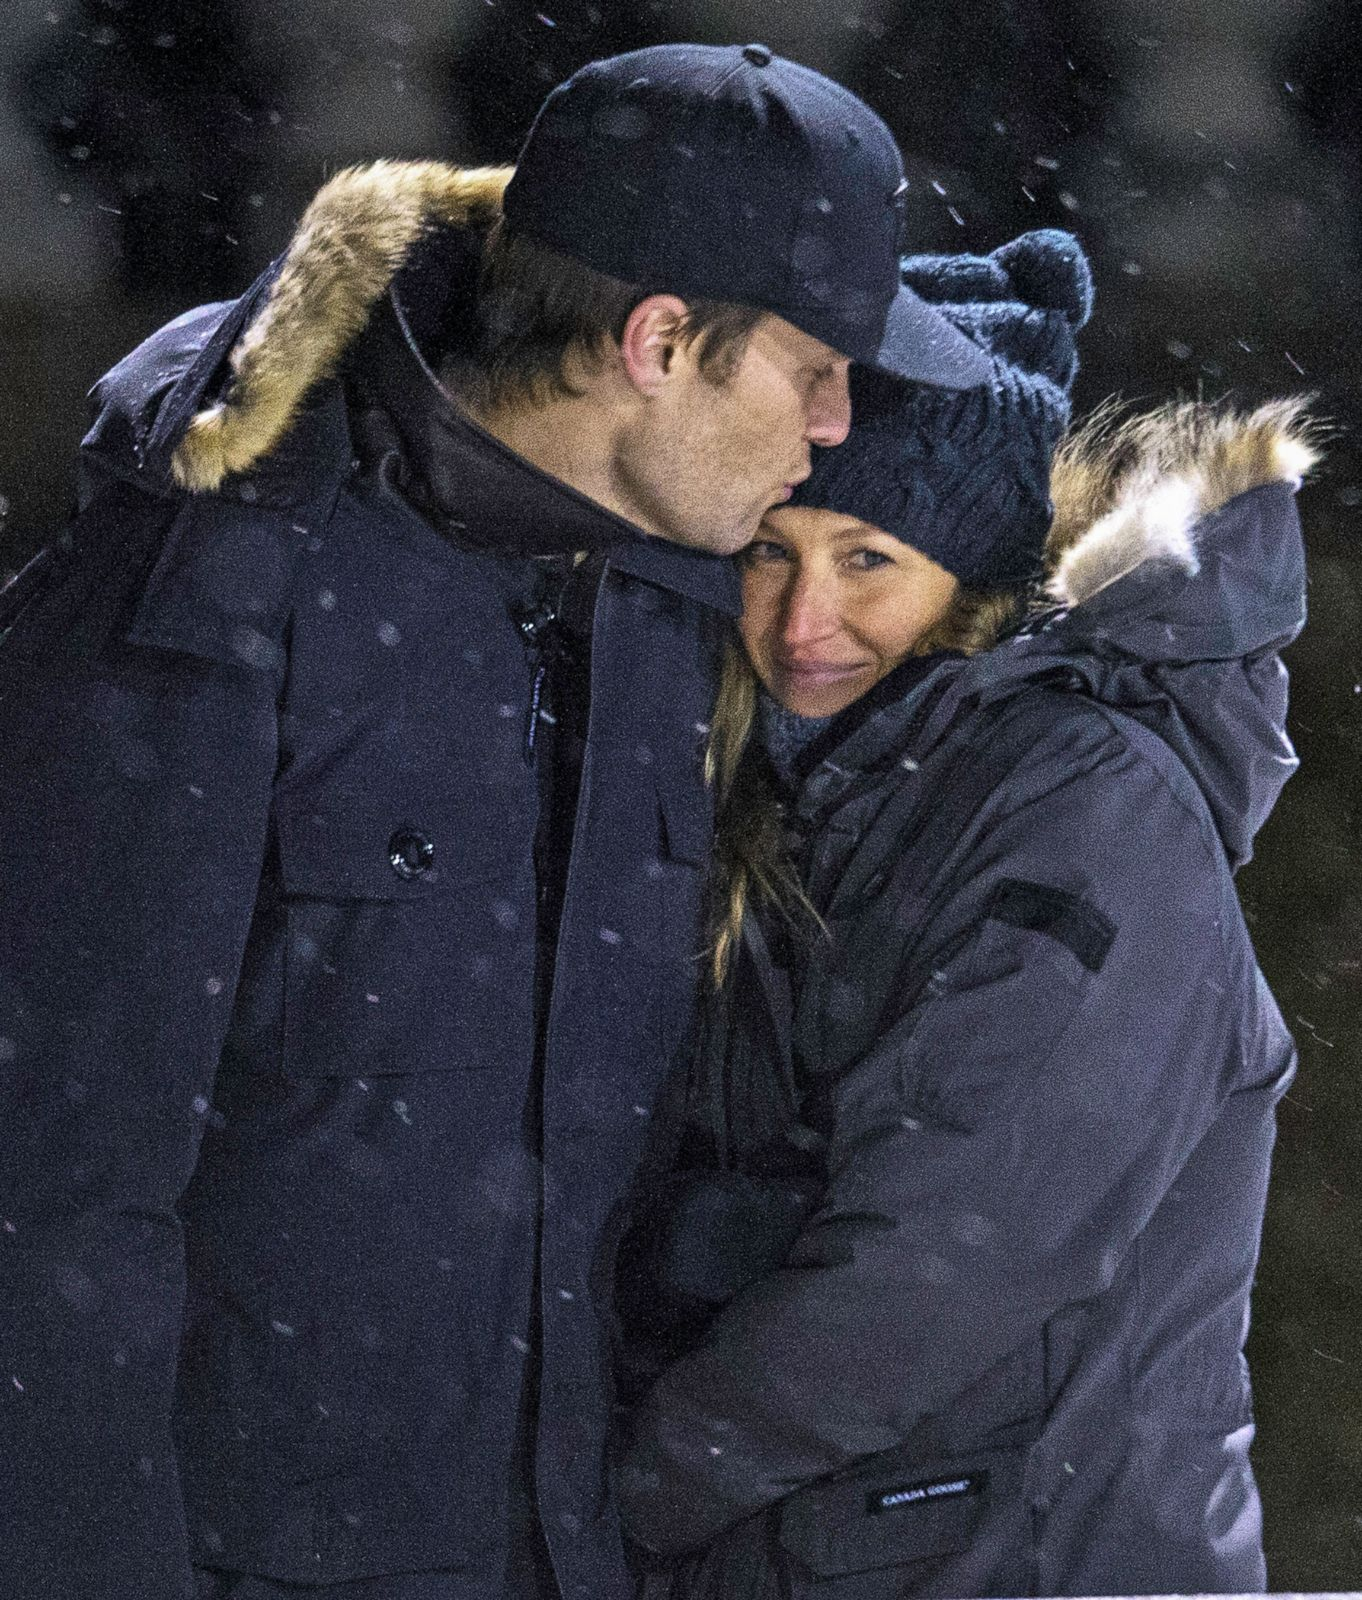 Tom Brady and Gisele Bundchen Snuggle in the Snow Picture  d26ee5cc769